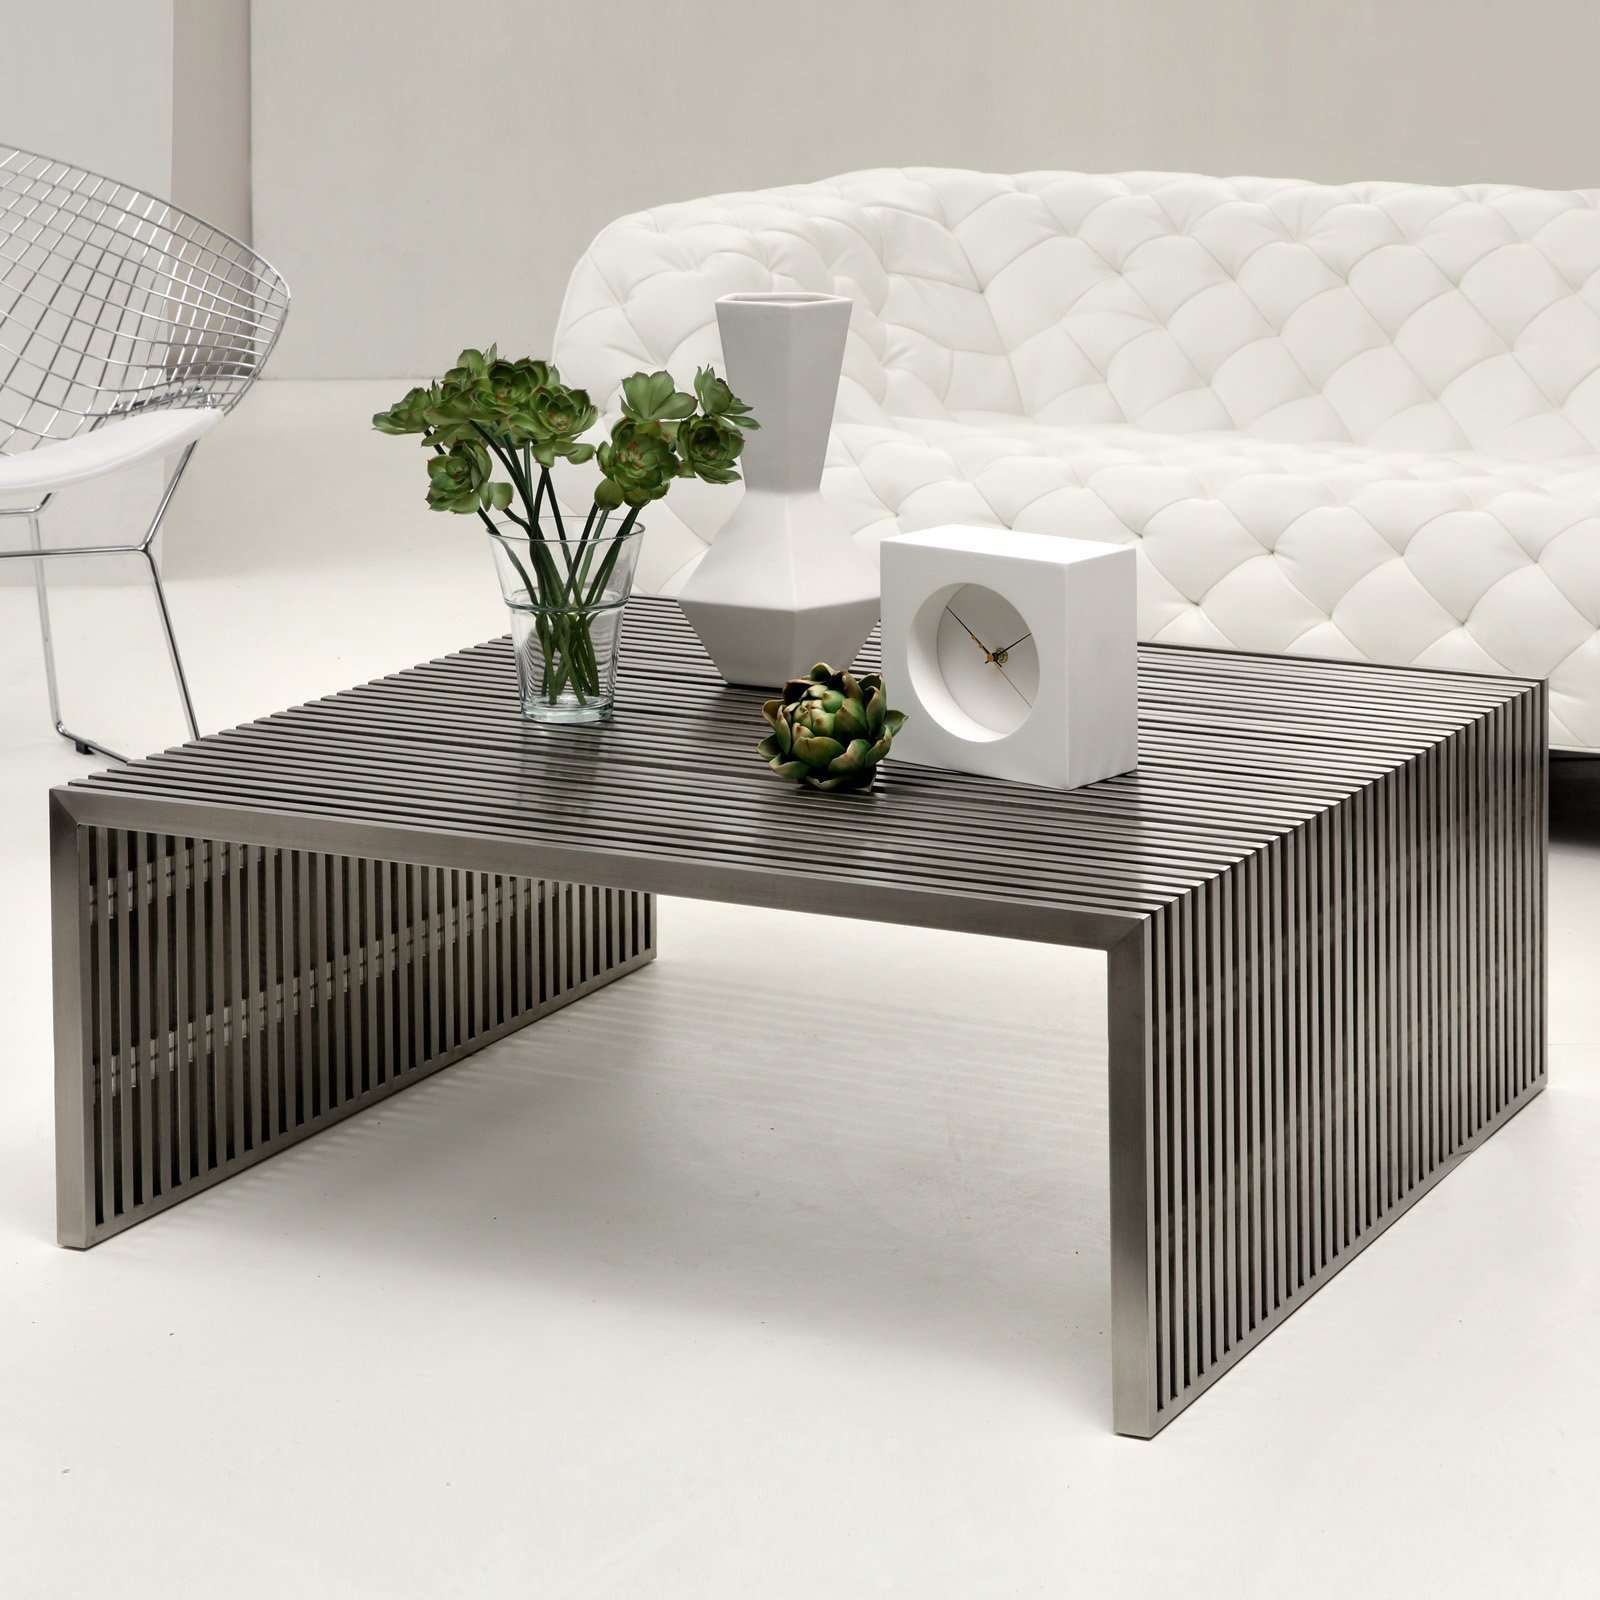 2017 Modern Coffee Tables With Storage Throughout Coffee Table : Modern Metal Coffee Table (View 9 of 20)